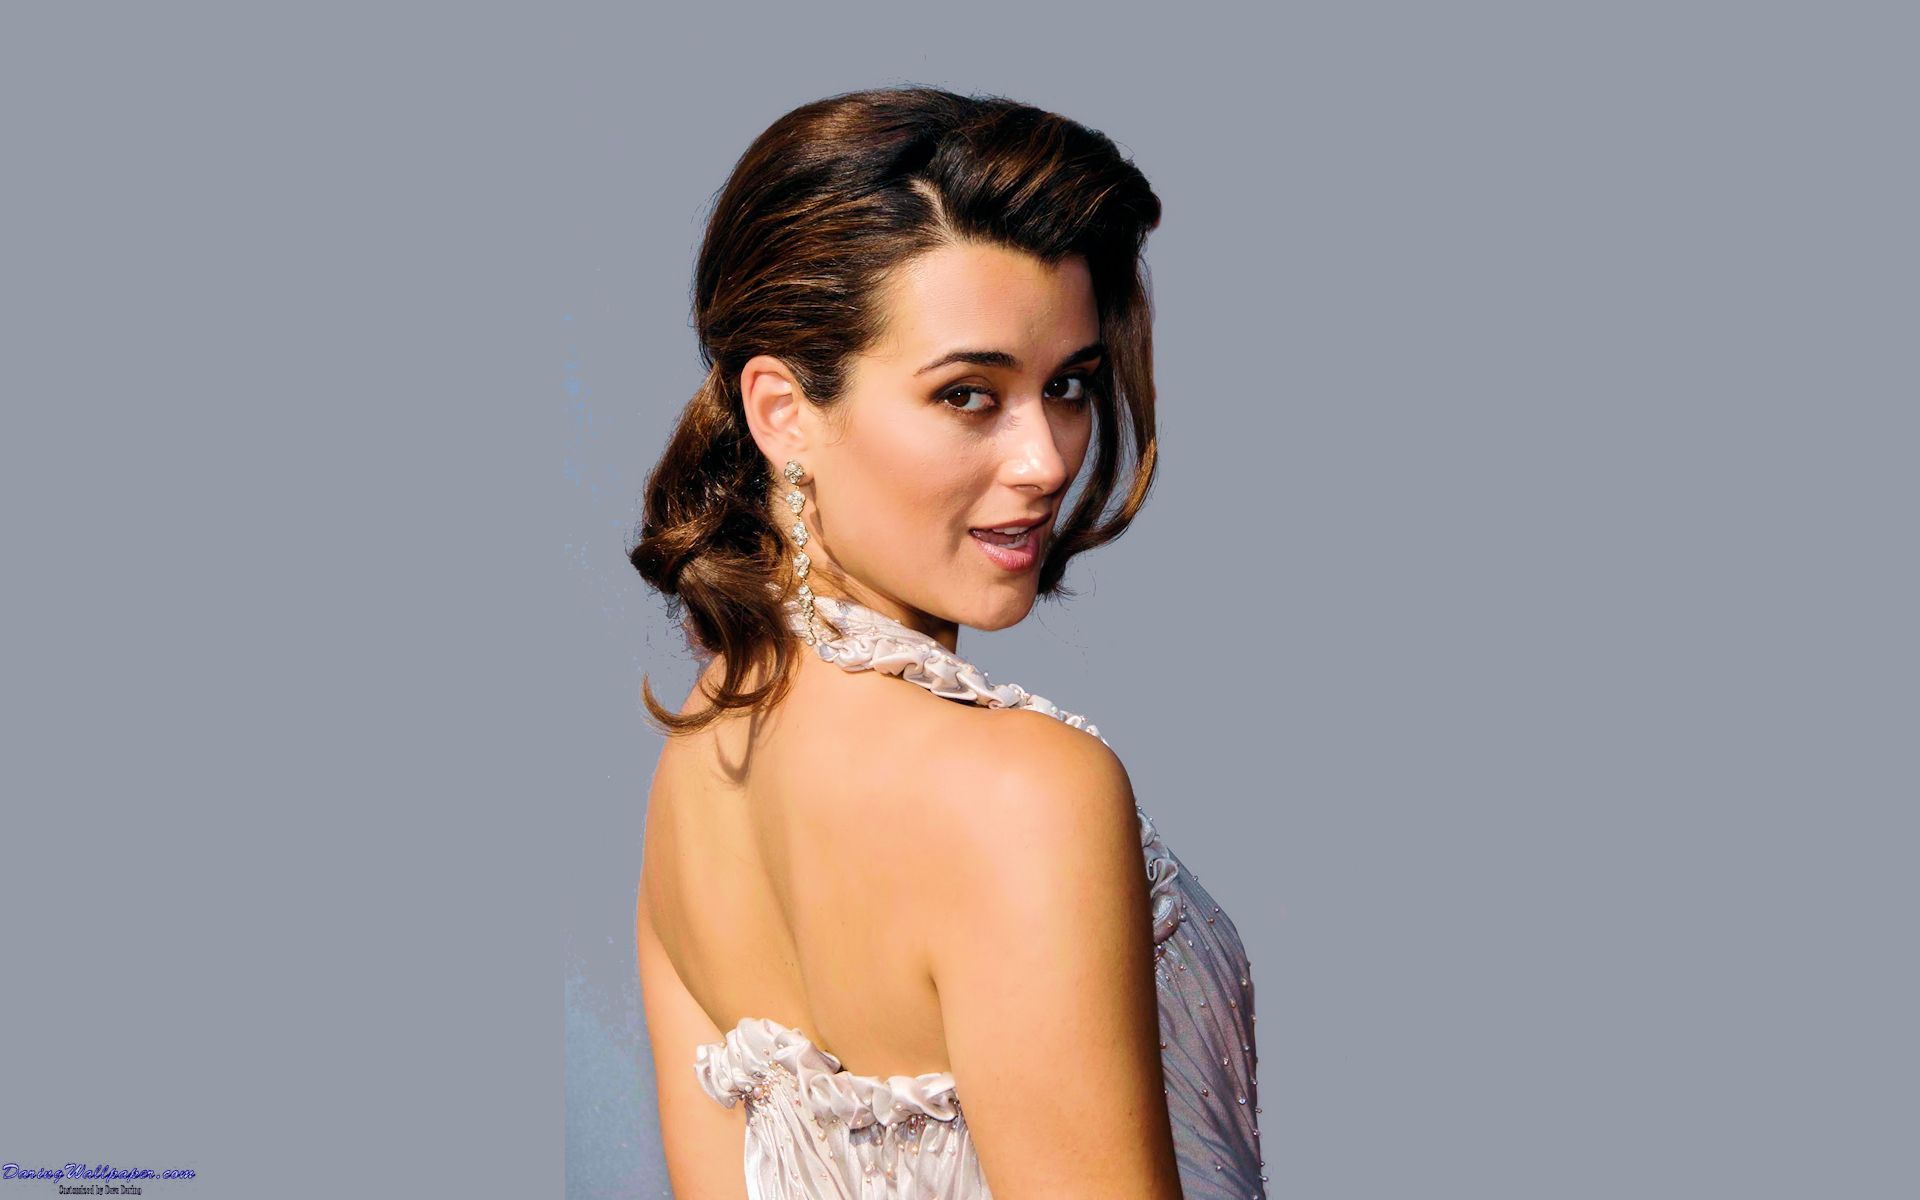 Ziva Ncis Wallpapers Top Free Ziva Ncis Backgrounds